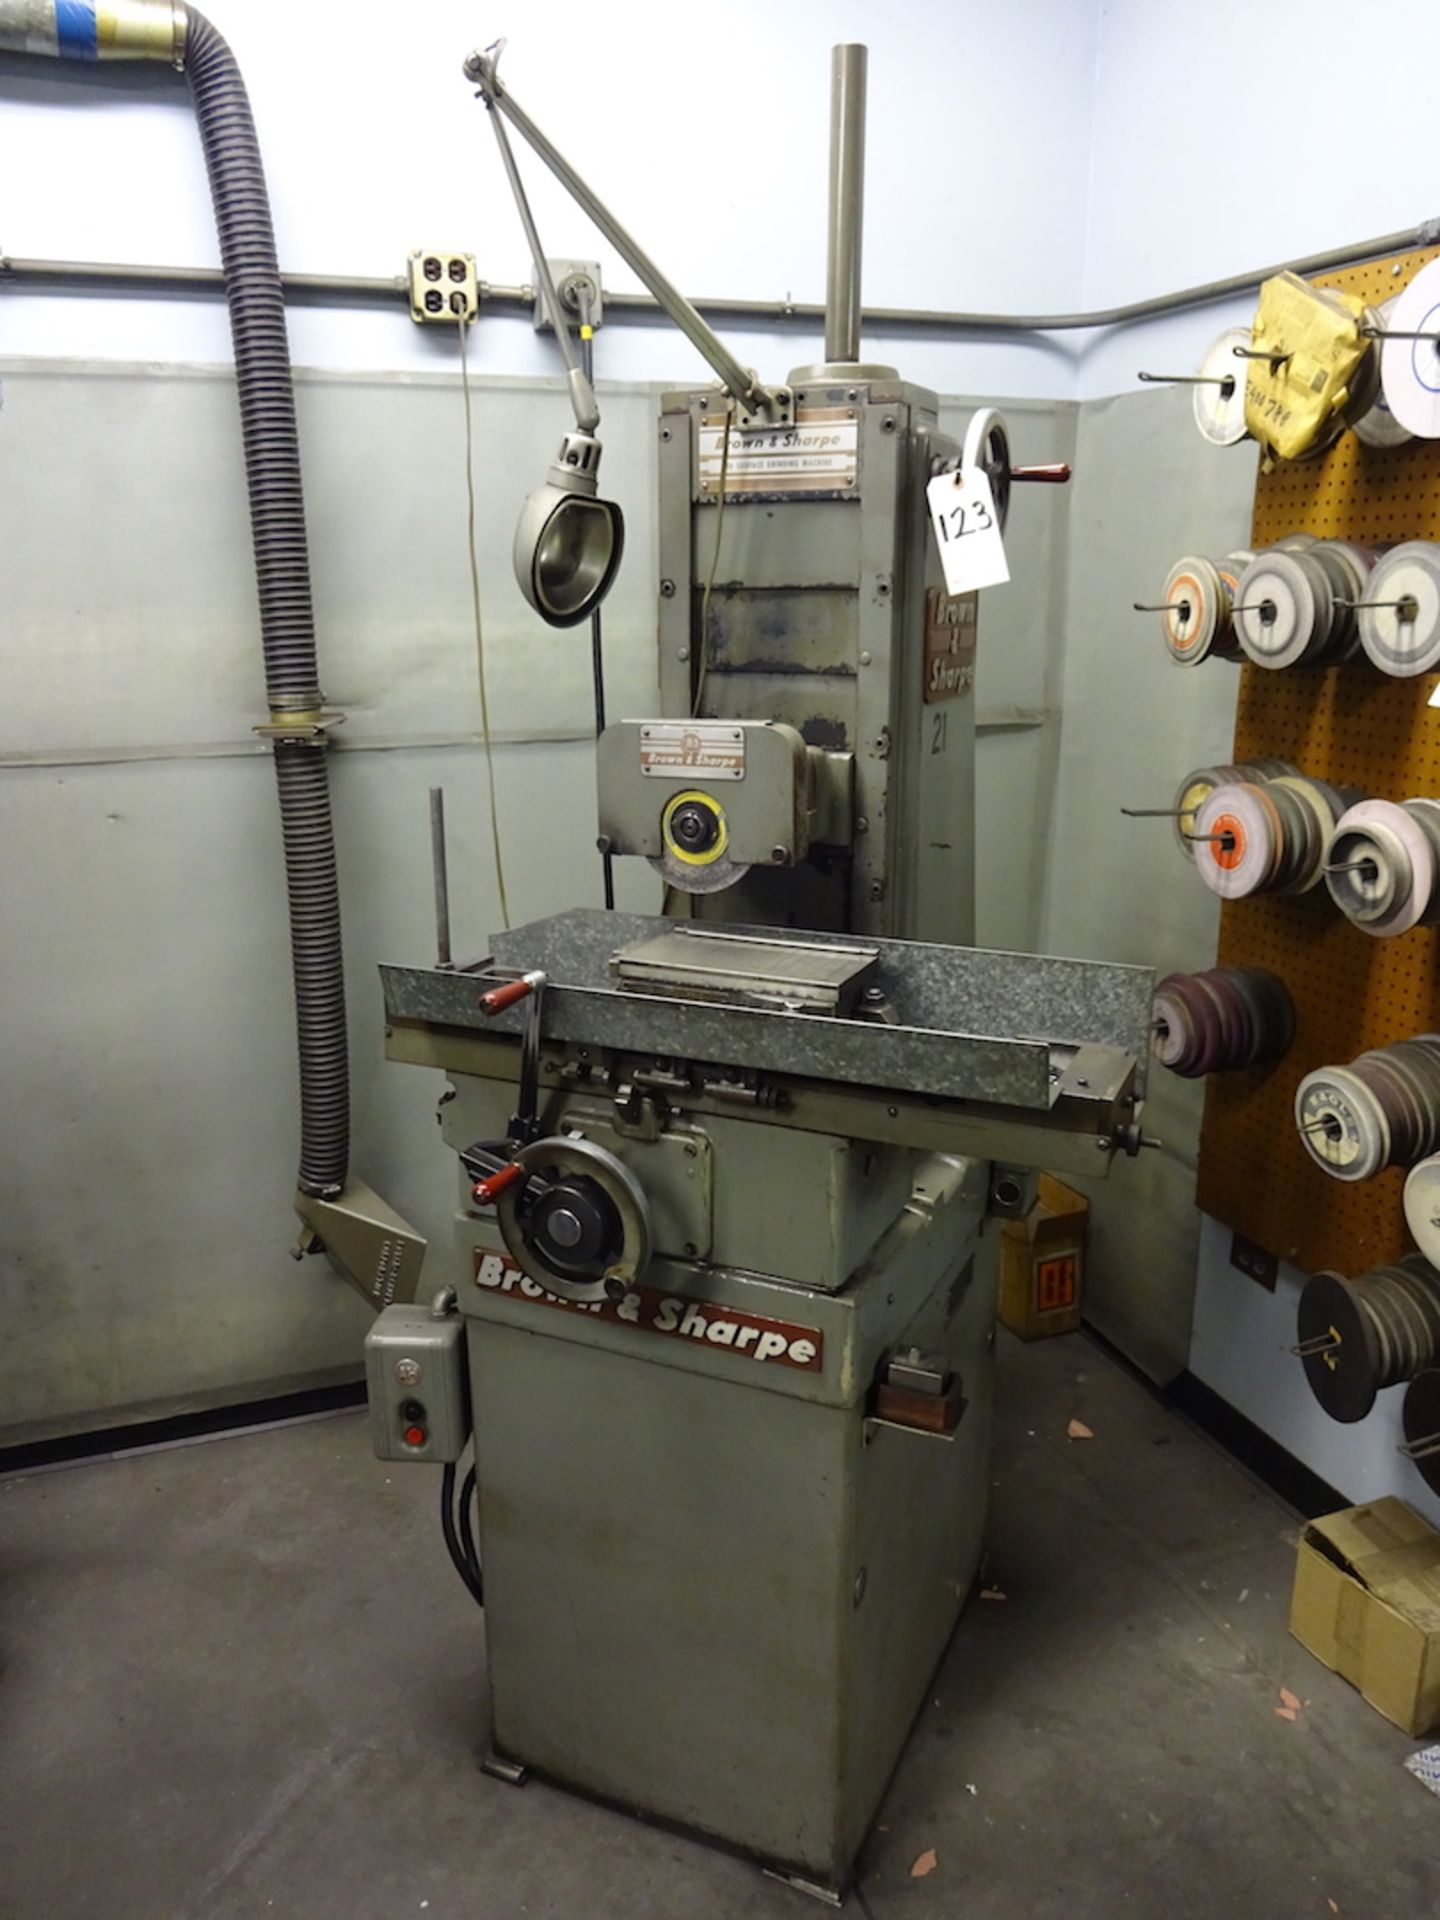 Brown & Sharpe 5 in. x 10 in. Model 510 Hand Feed Surface Grinder, S/N 523-510-1238